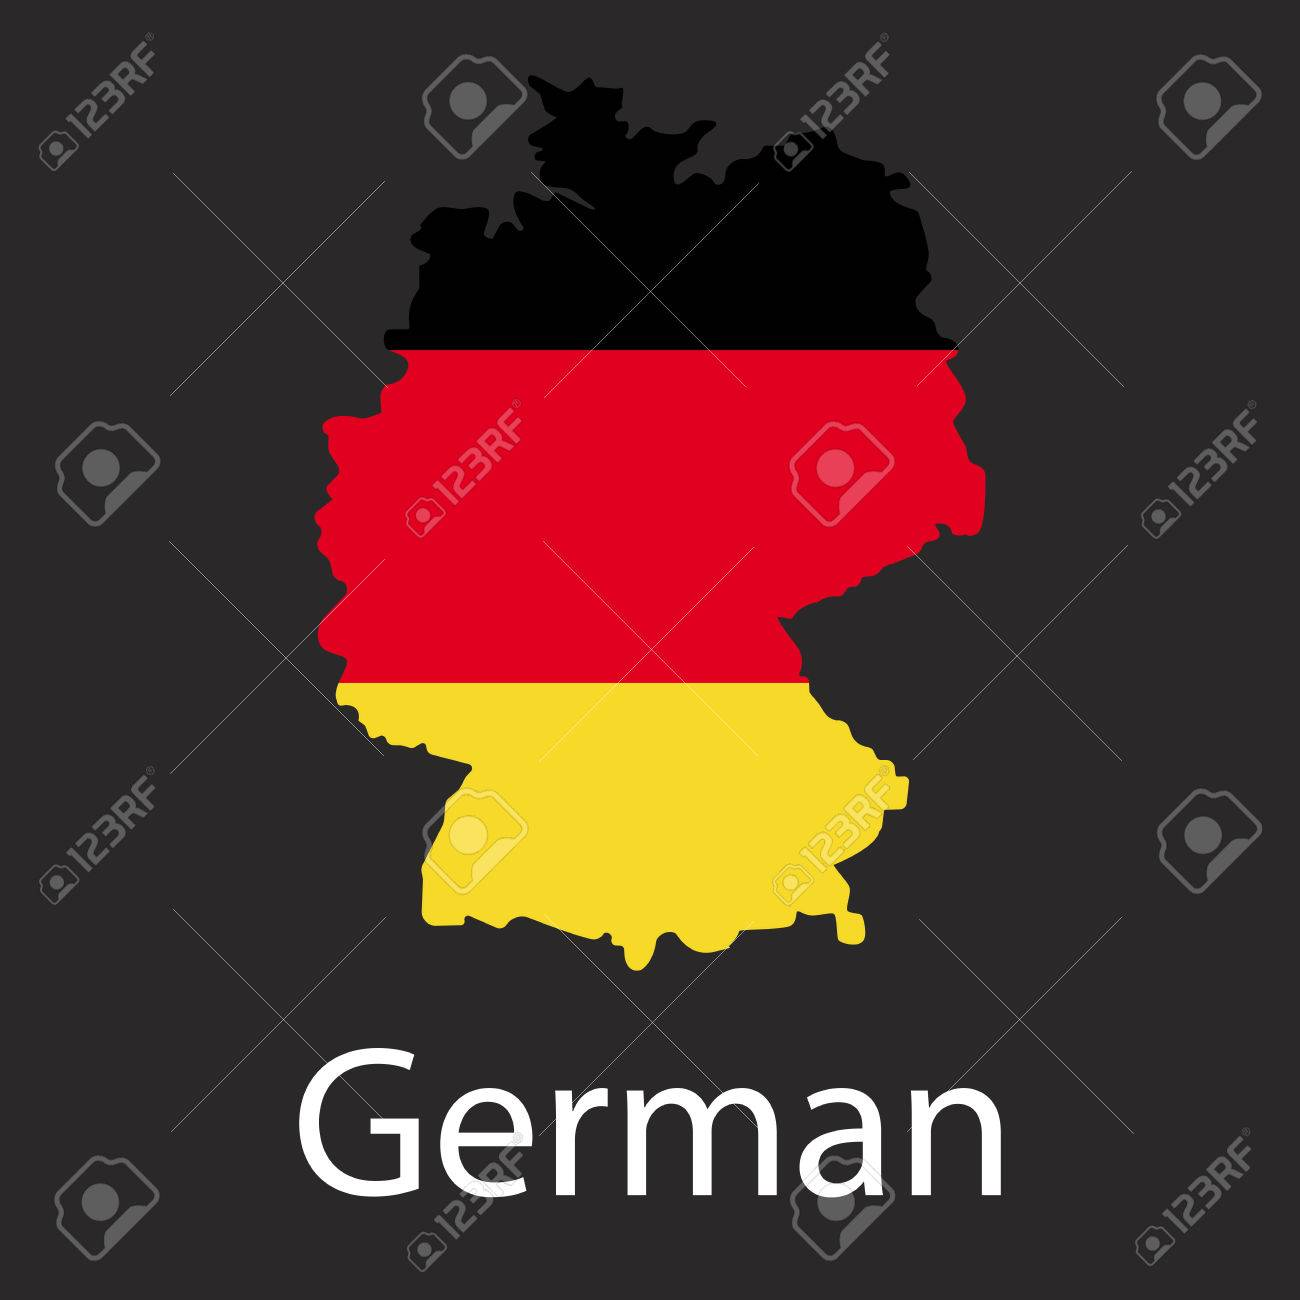 Country Of Germany Map.Map Of Germany Country In Color Of National Flag Silhouette